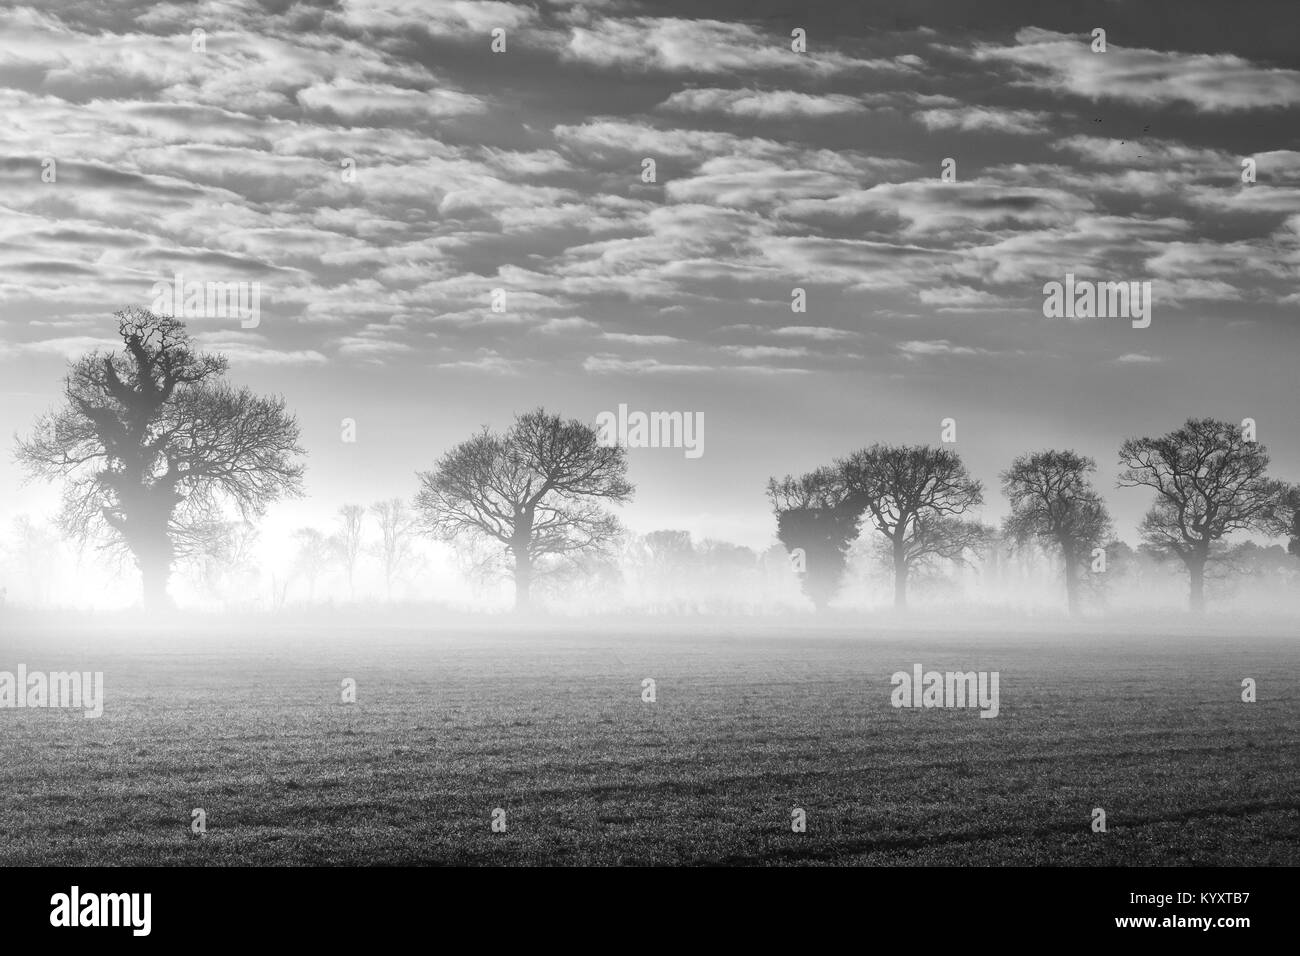 Sunrise on a cold frosty morning with a mist on the ground. - Stock Image